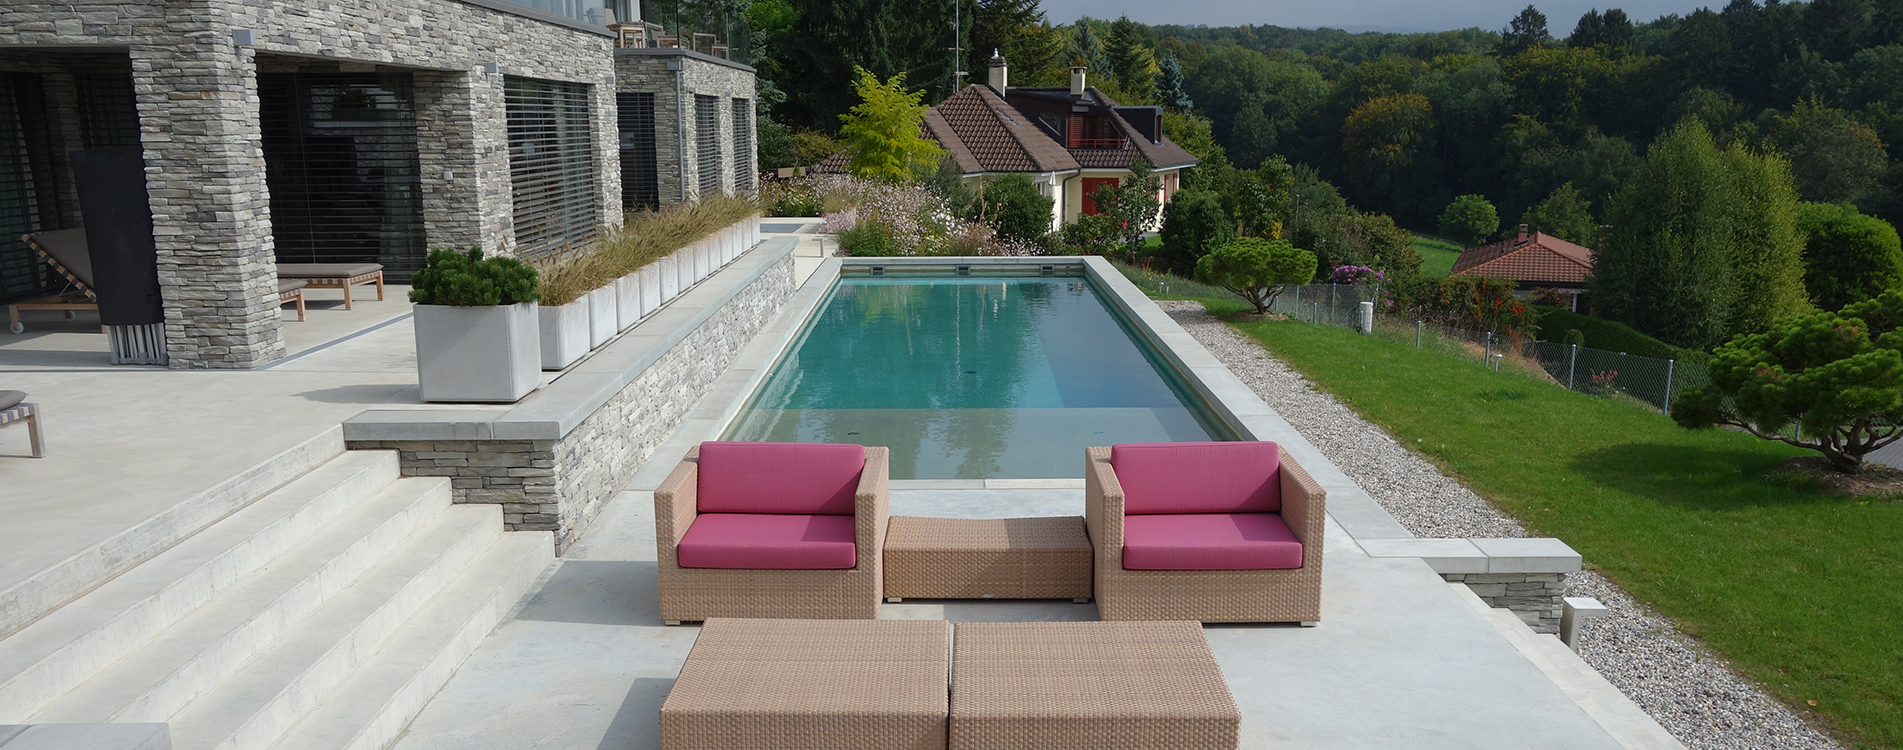 construction-piscine-vaud-1